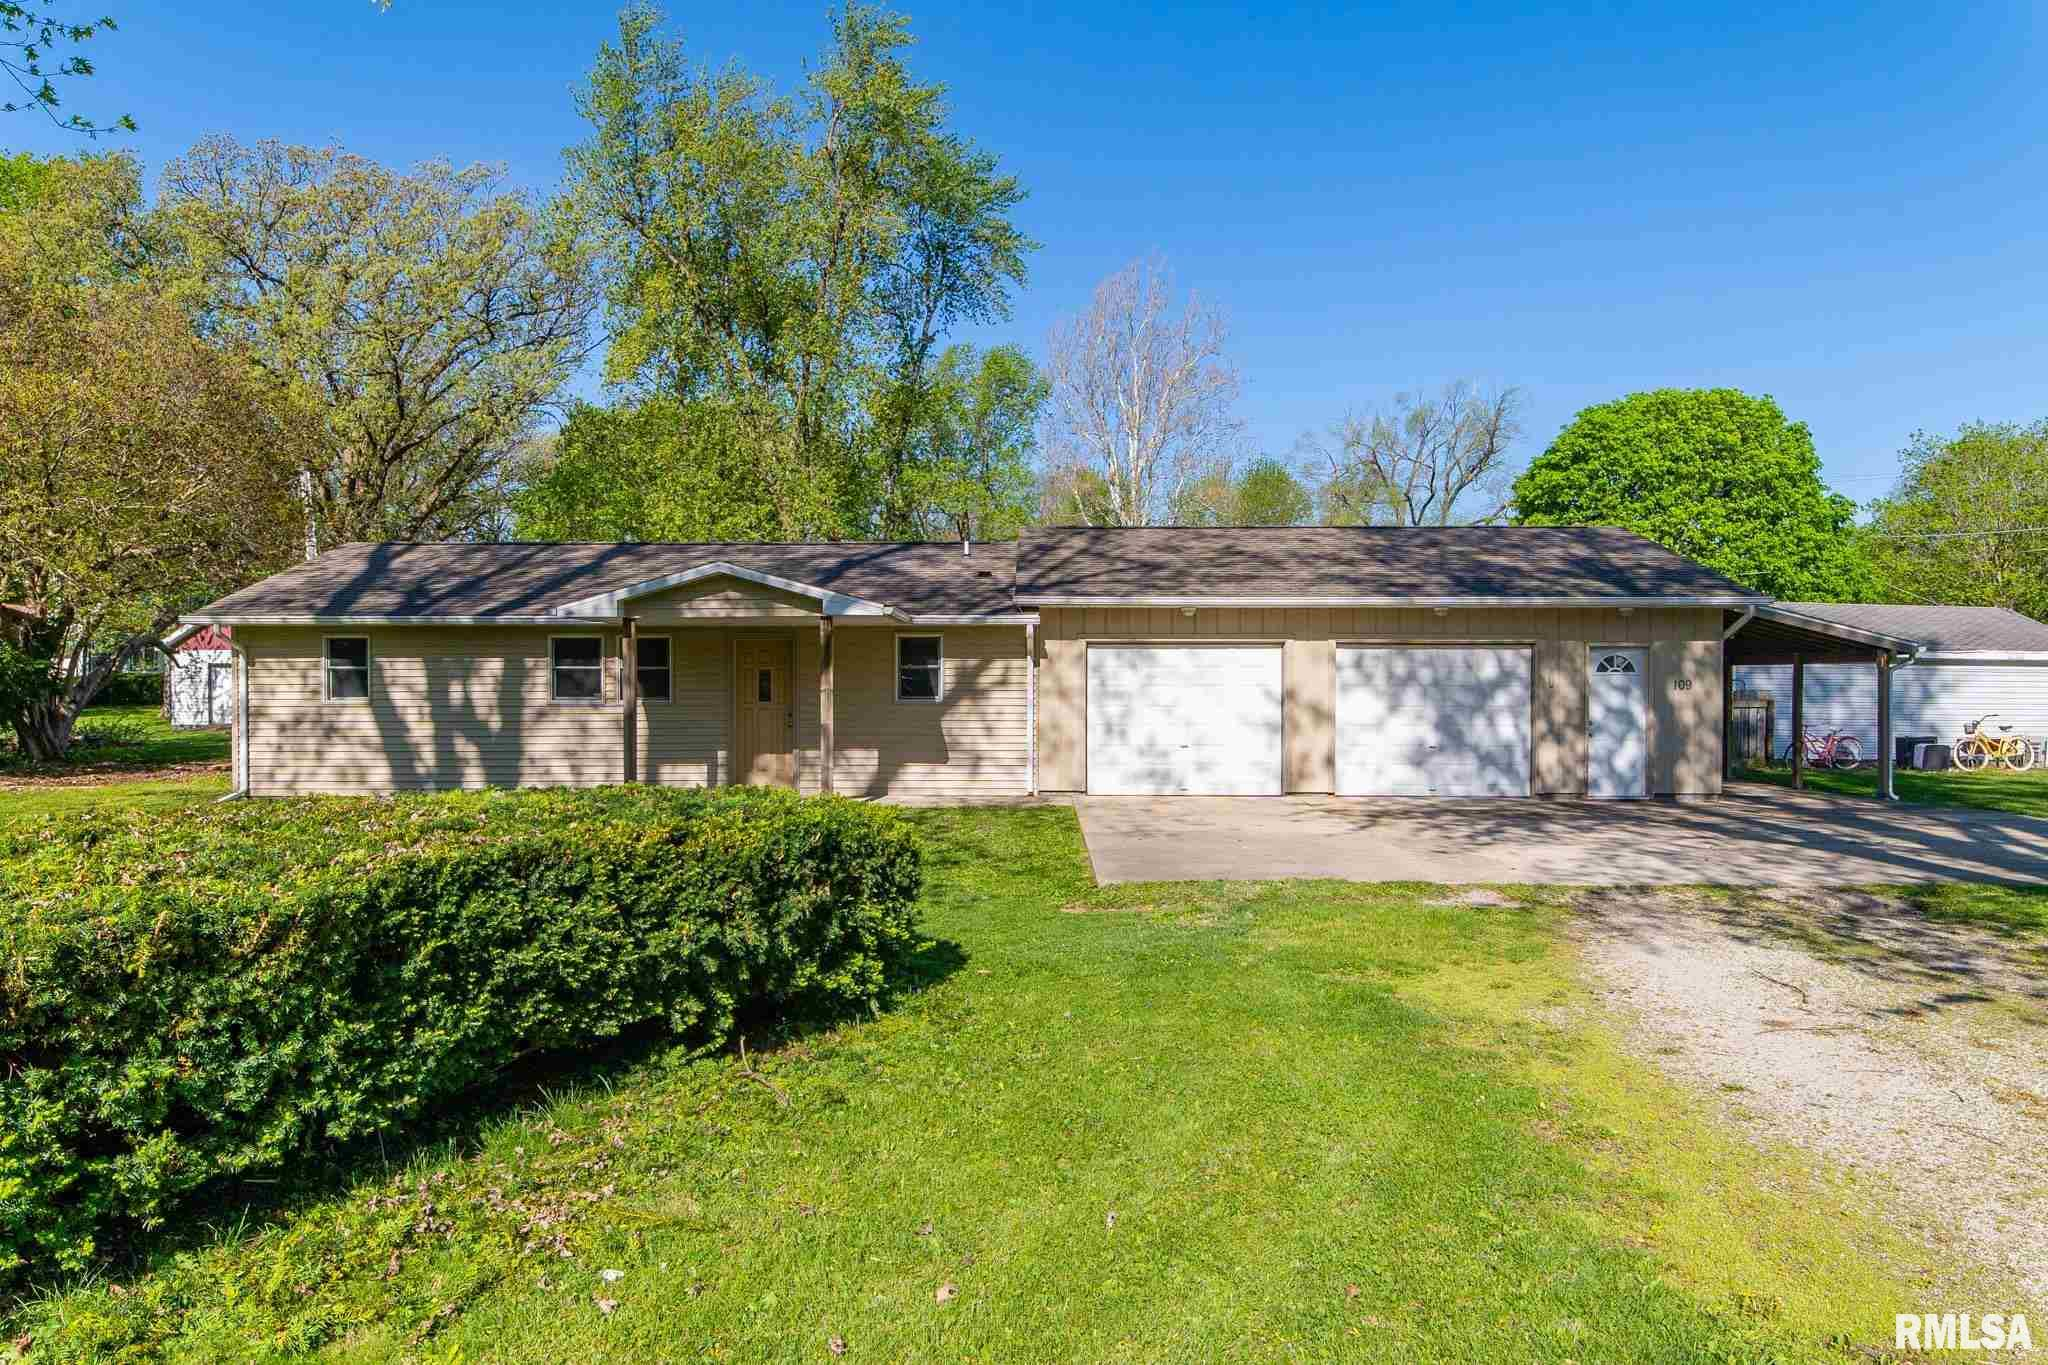 109 N Blatchford Property Photo - McLean, IL real estate listing